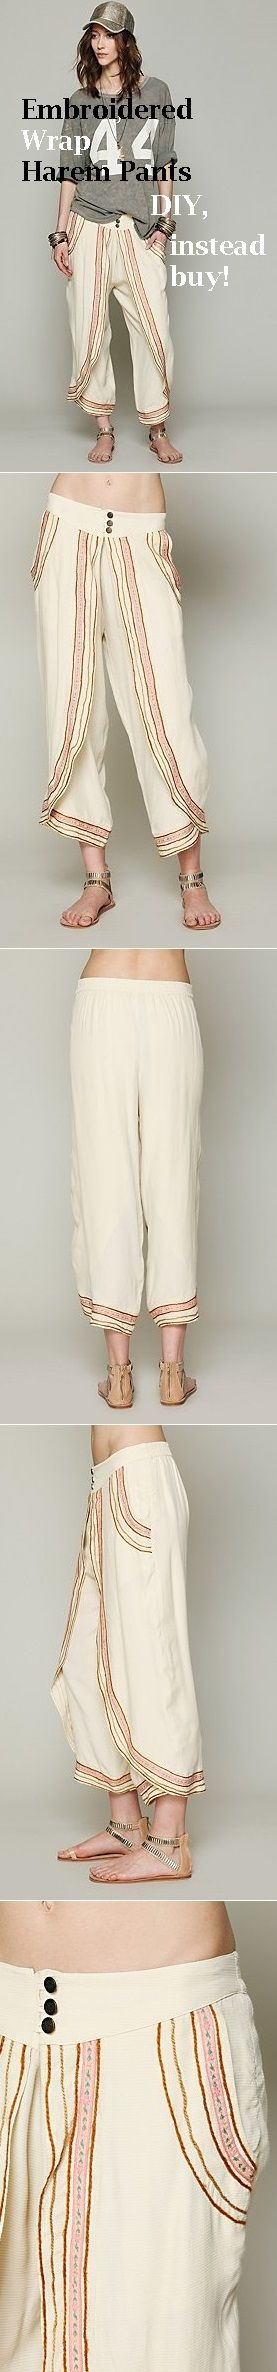 Idea - Embroidered Wrap Harem Pants DIY, Instead Buy!